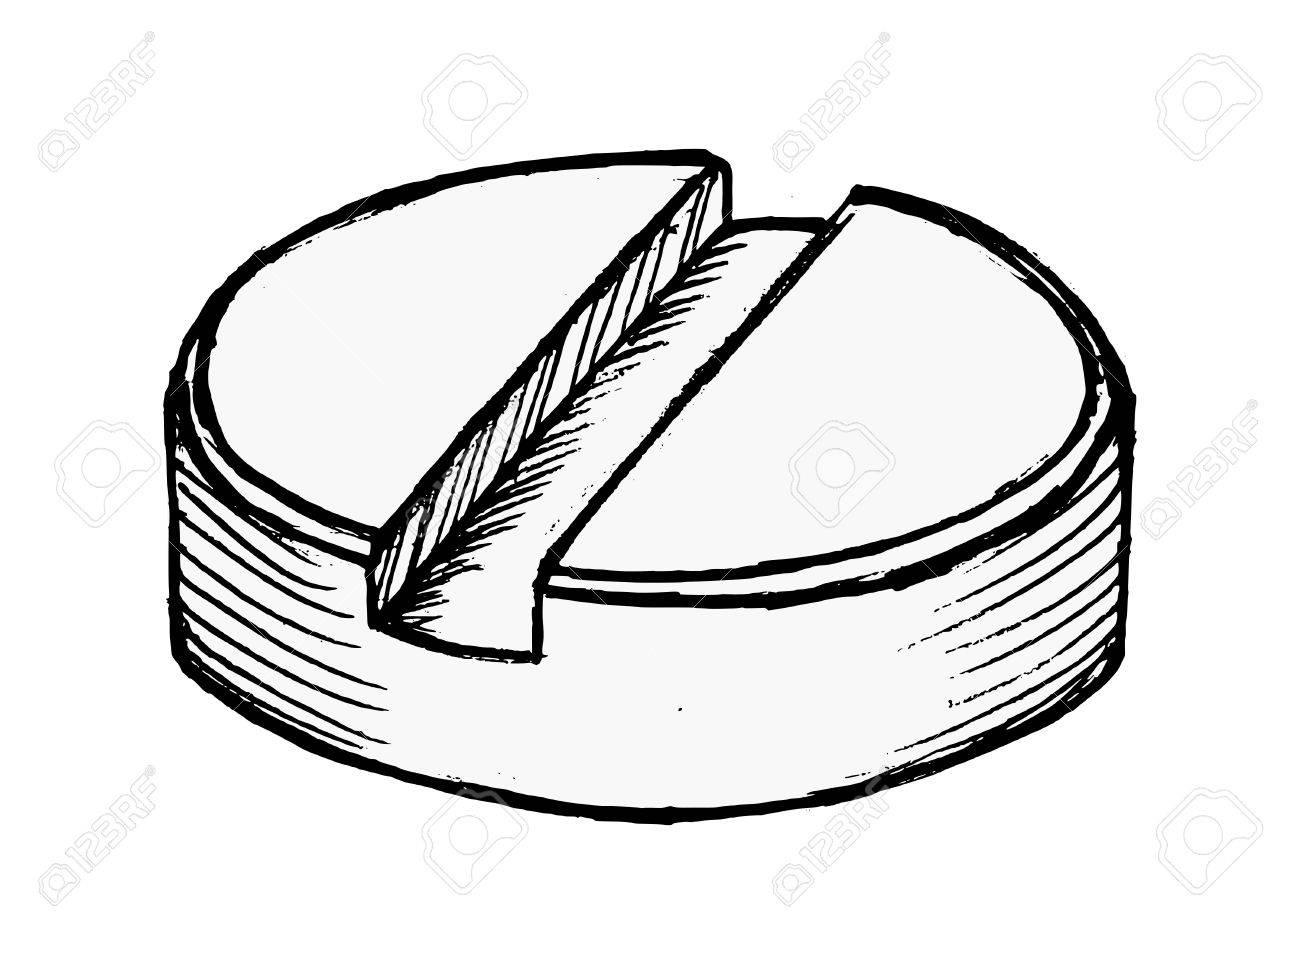 1300x974 Hand Drawing Vector Illustration Of A Pill On White Royalty Free